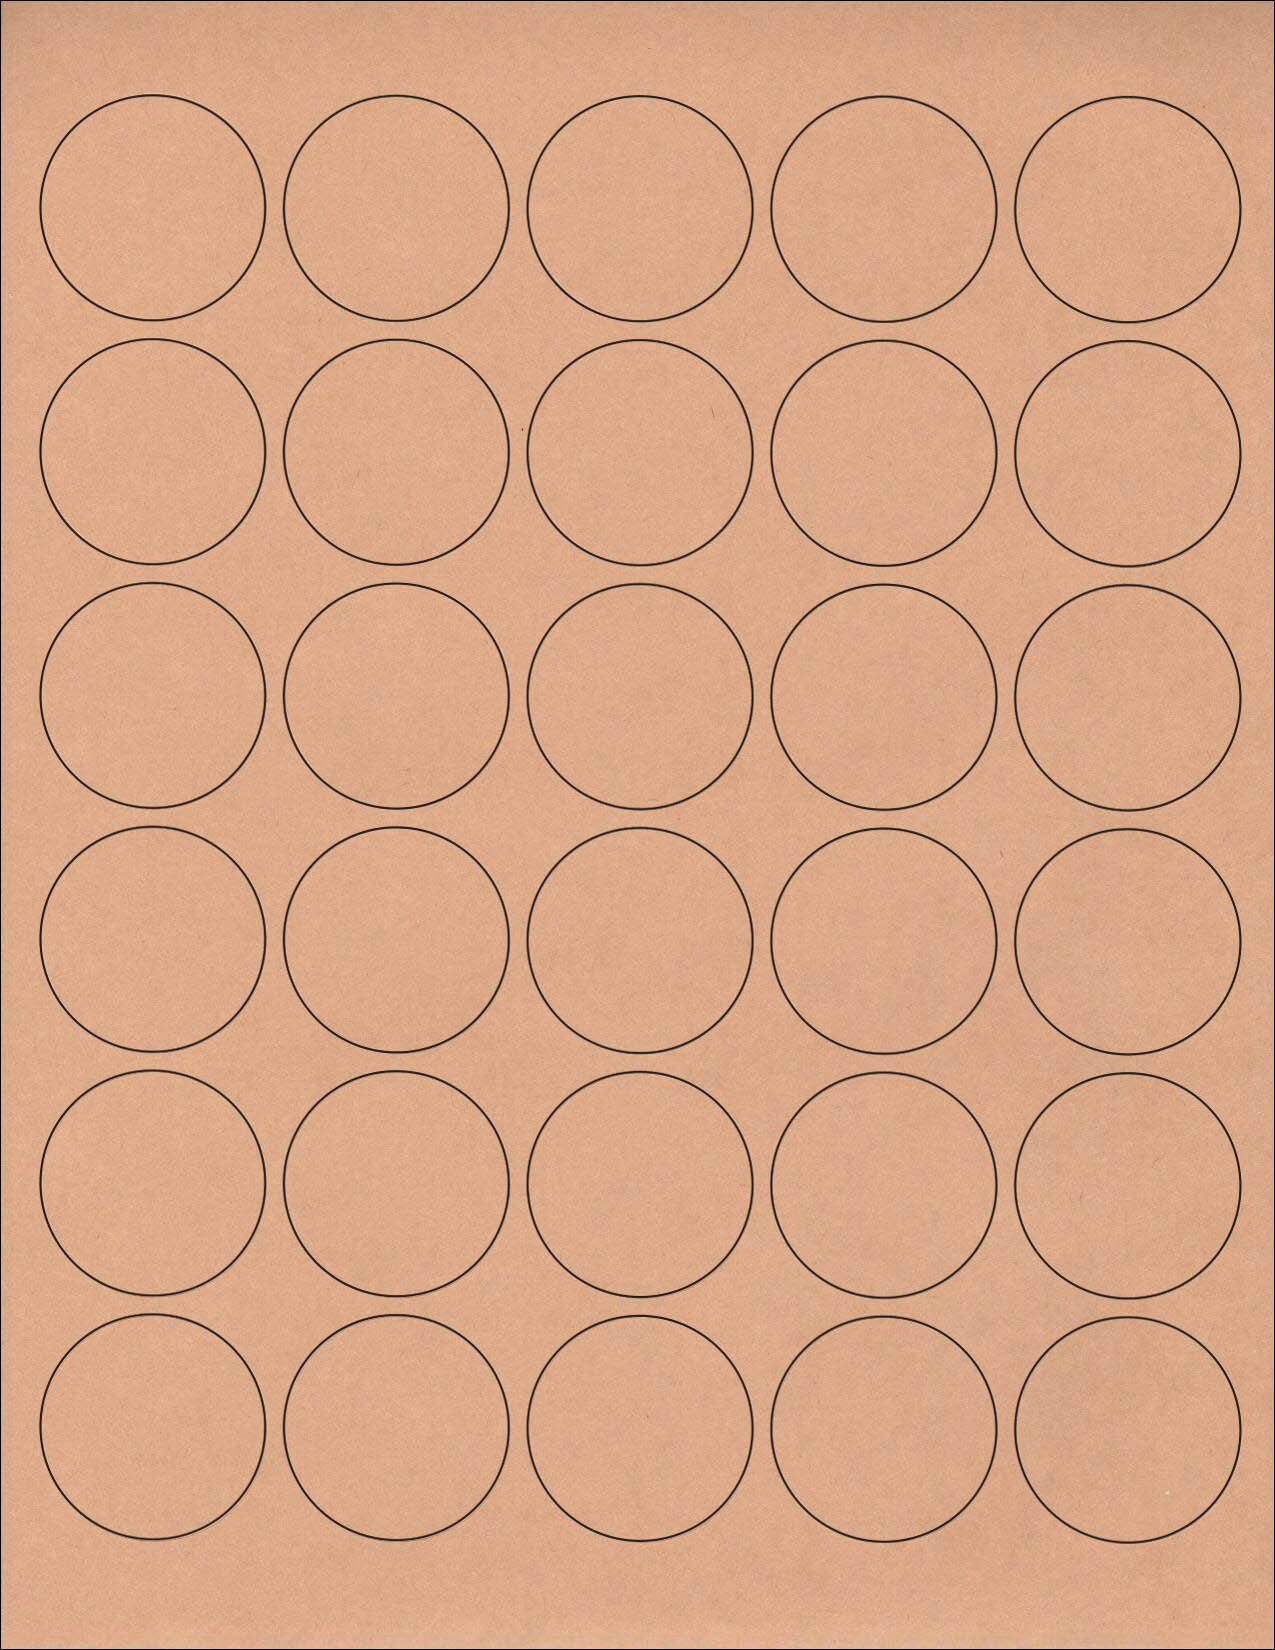 (36 SHEETS) 1080 1-1/2'' Blank Round Circle Brown KRAFT Stickers for Inkjet & Laser Printers. Size: 8-1/2''x11'' Standard Sheets